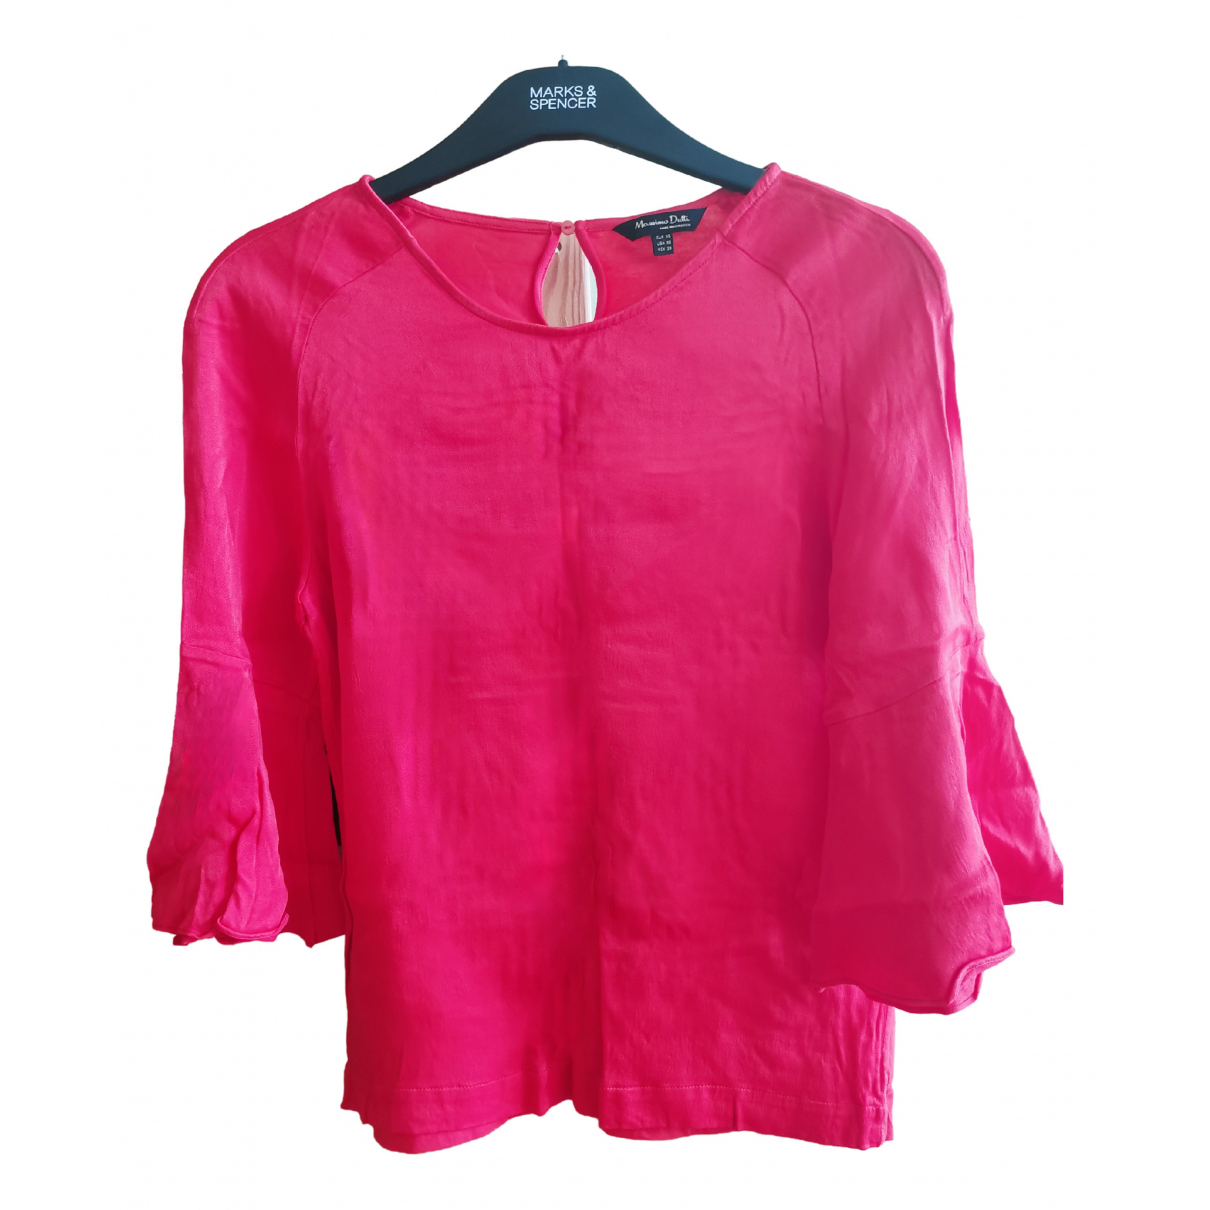 Massimo Dutti \N Red  top for Women 34 FR